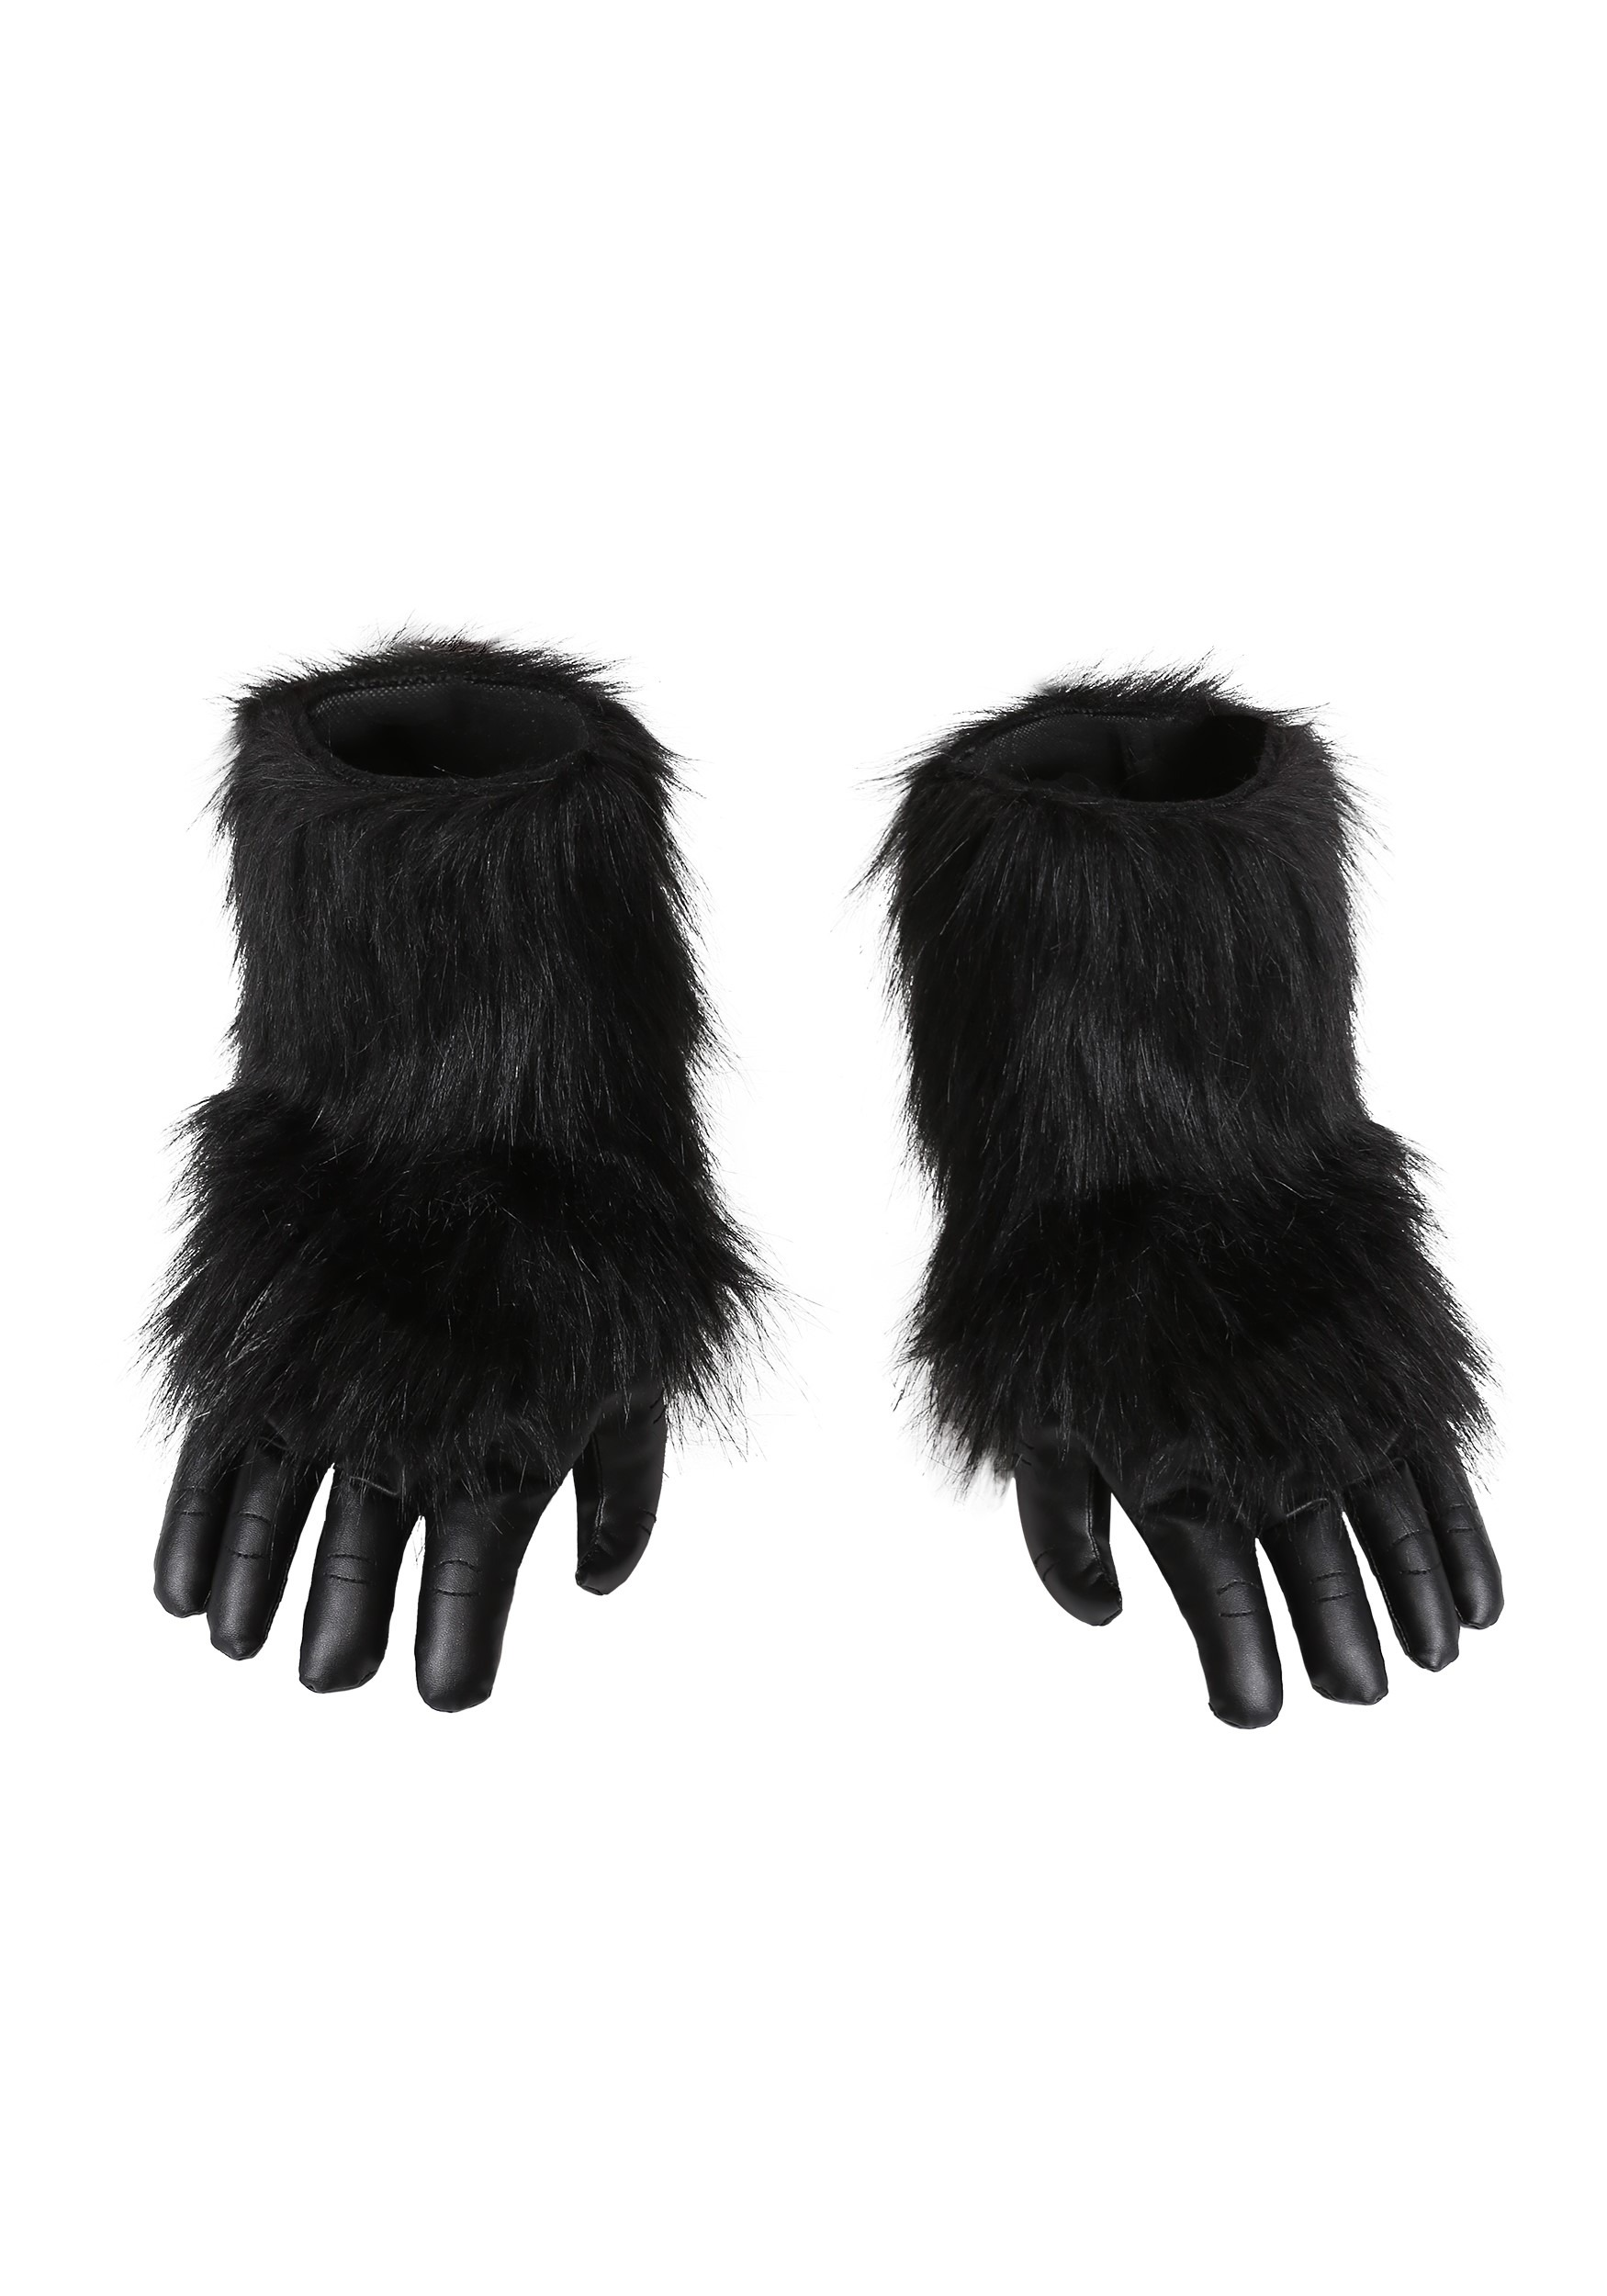 Gorilla Adult Foot Covers